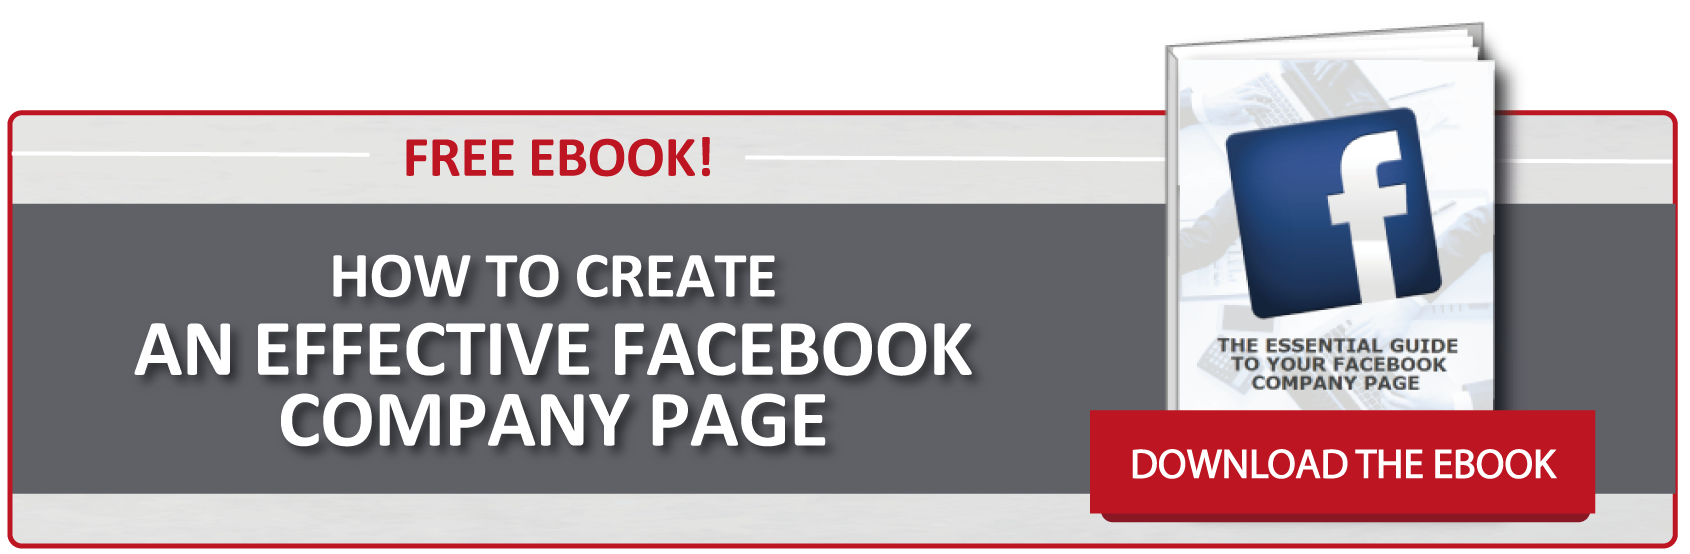 Essential Guide to Facebook Company Pages